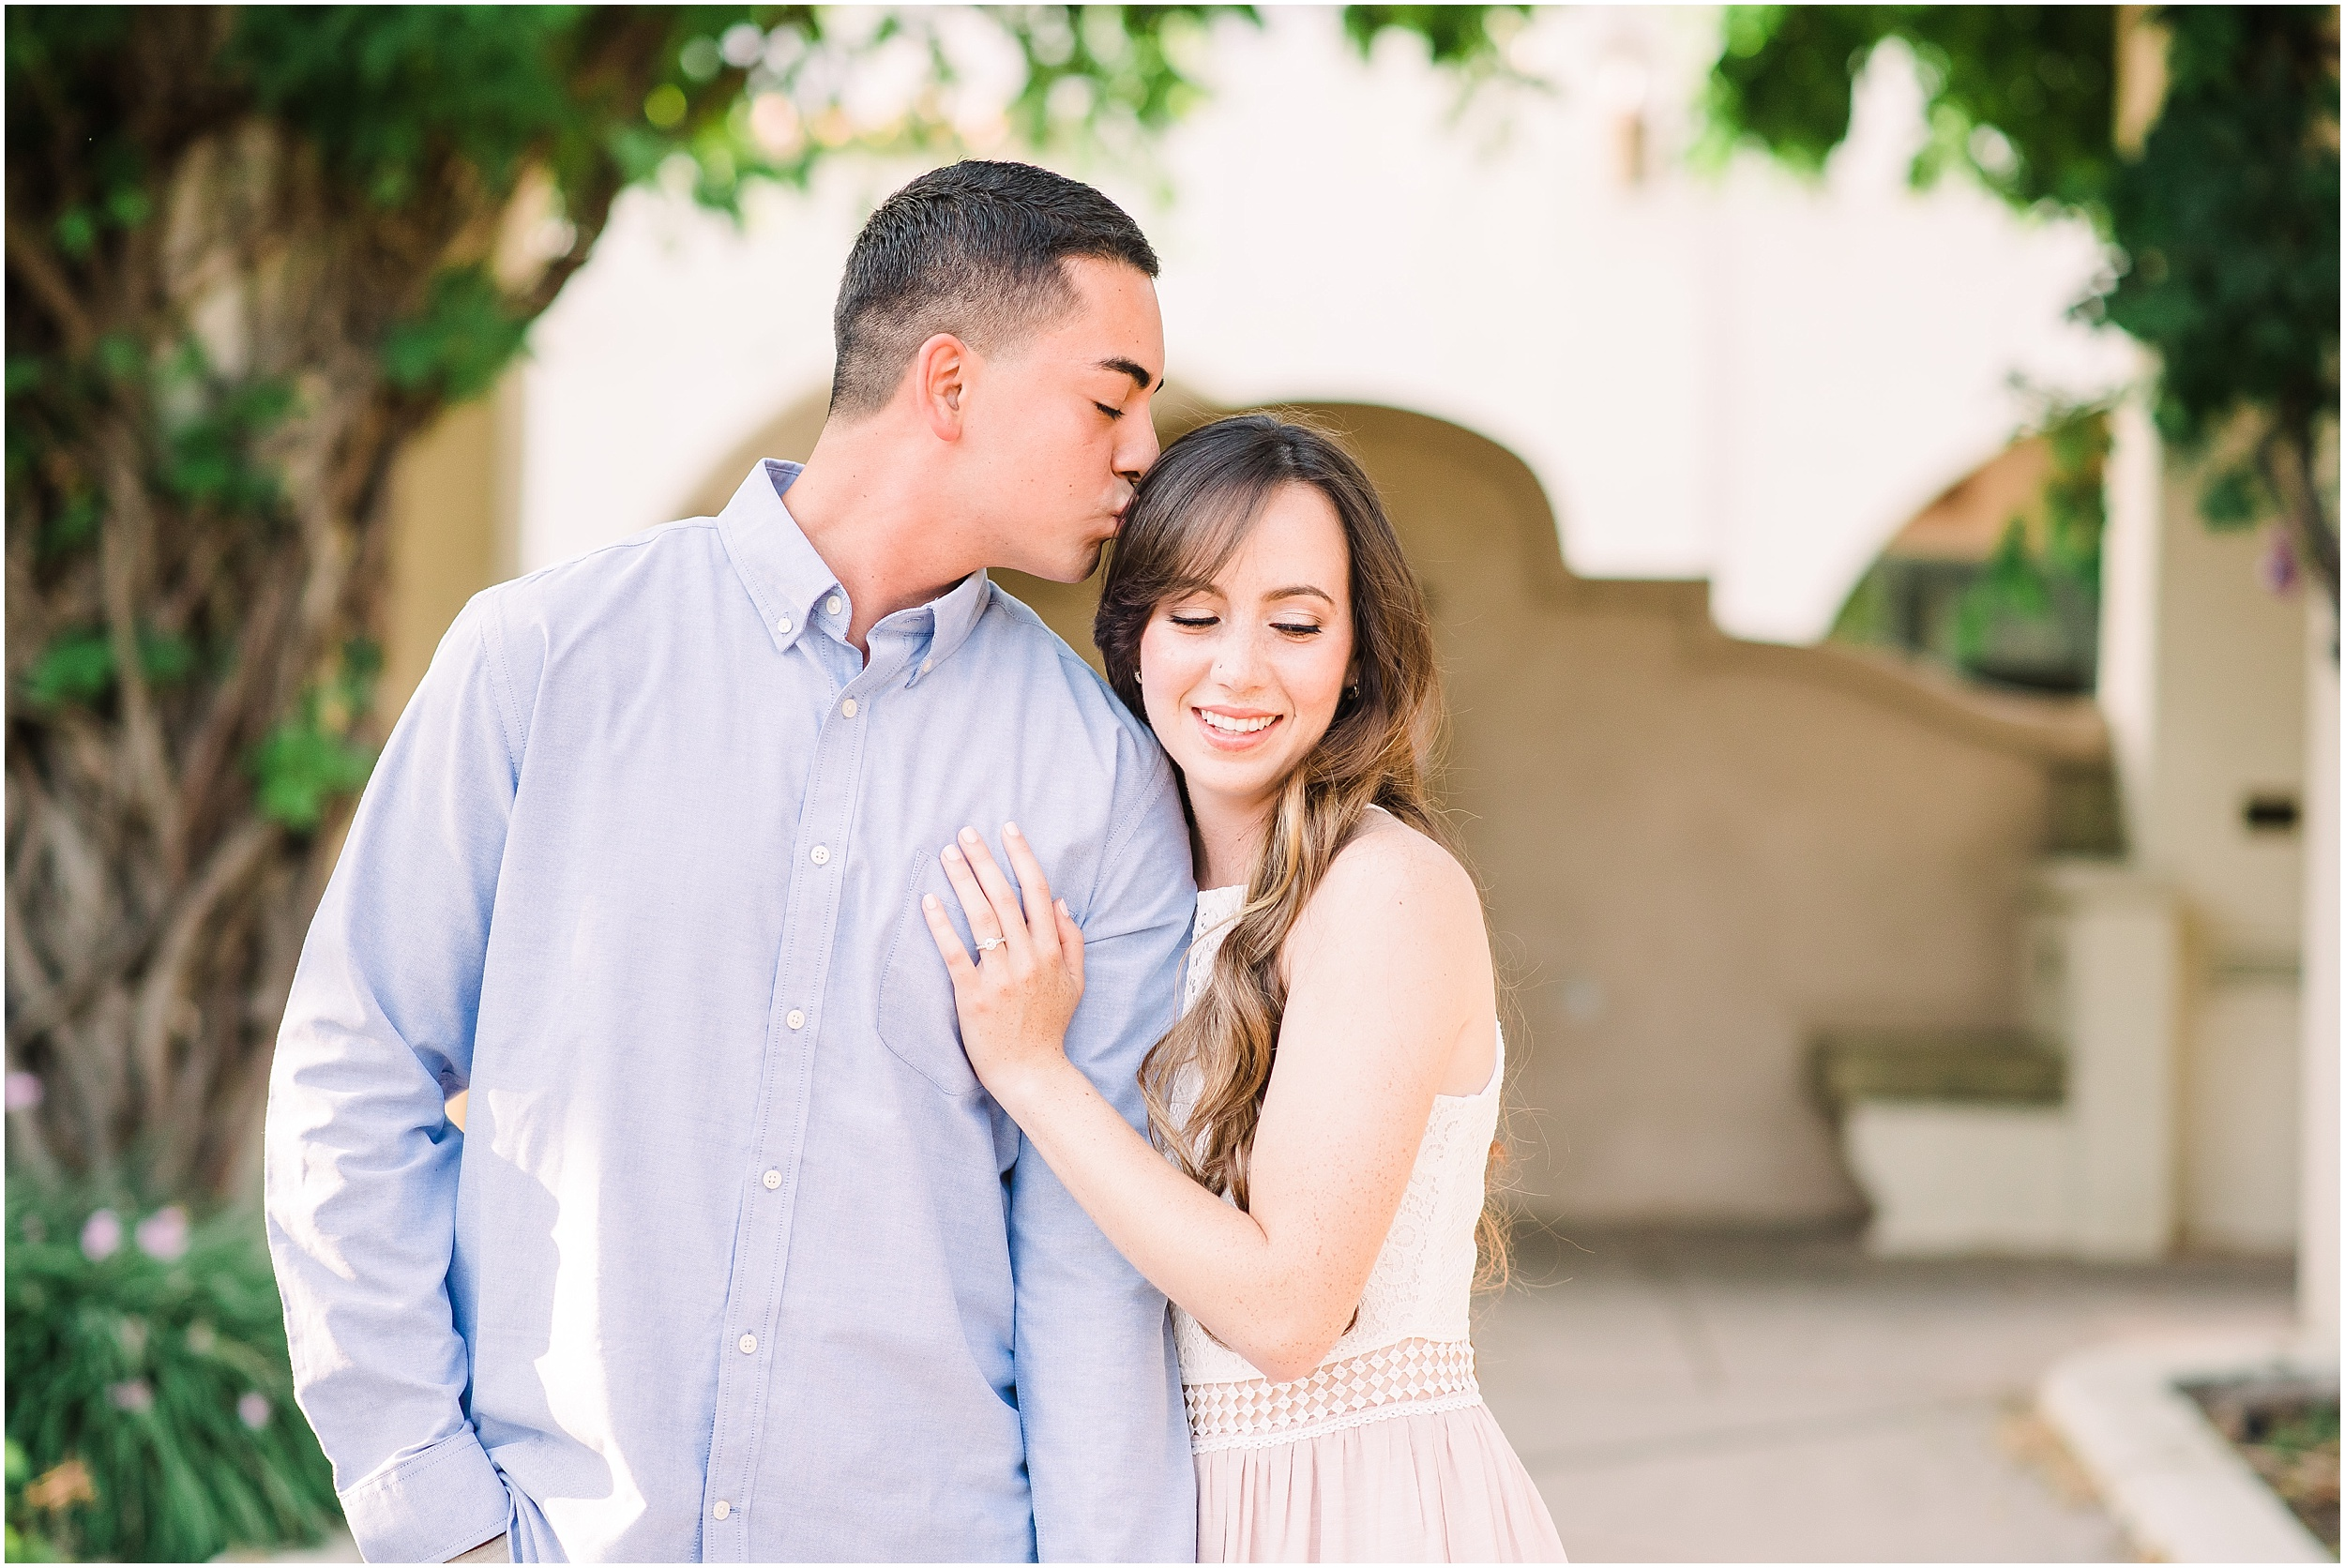 Valeria-Gonzalez-Photography-Wedding-and-Portrait-Photographer-Richmond-Virginia-Engagement-Session-in-Ojai-California_0003.jpg